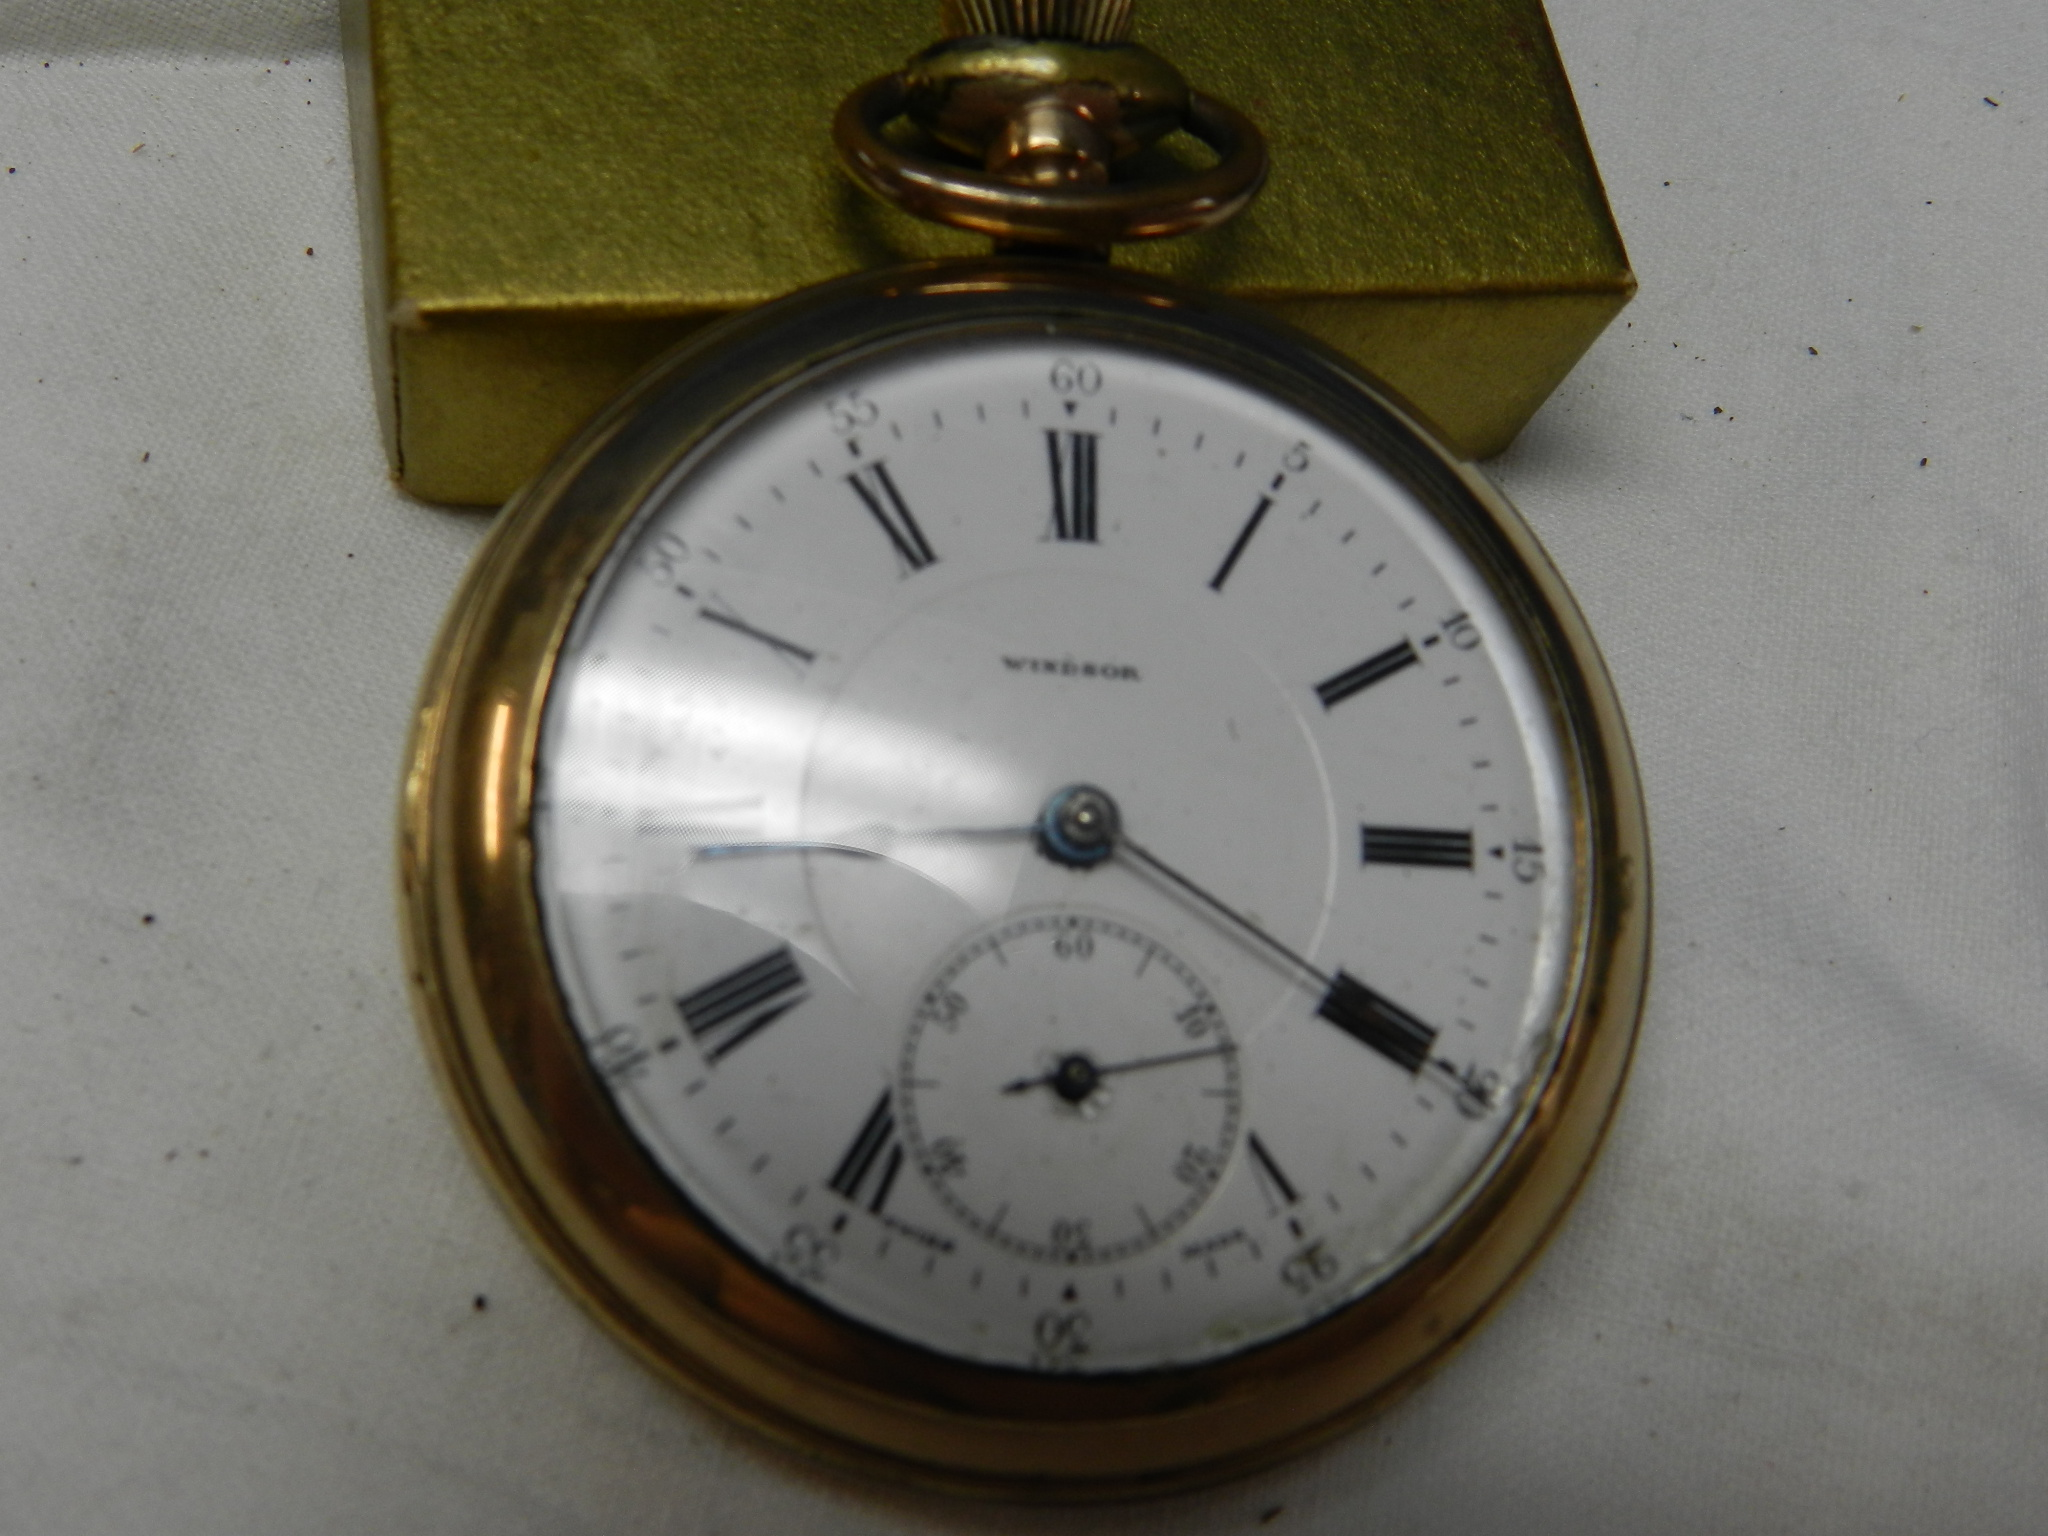 $69 - Waltham A.W.C Gold Filled/Plated Pocket watch